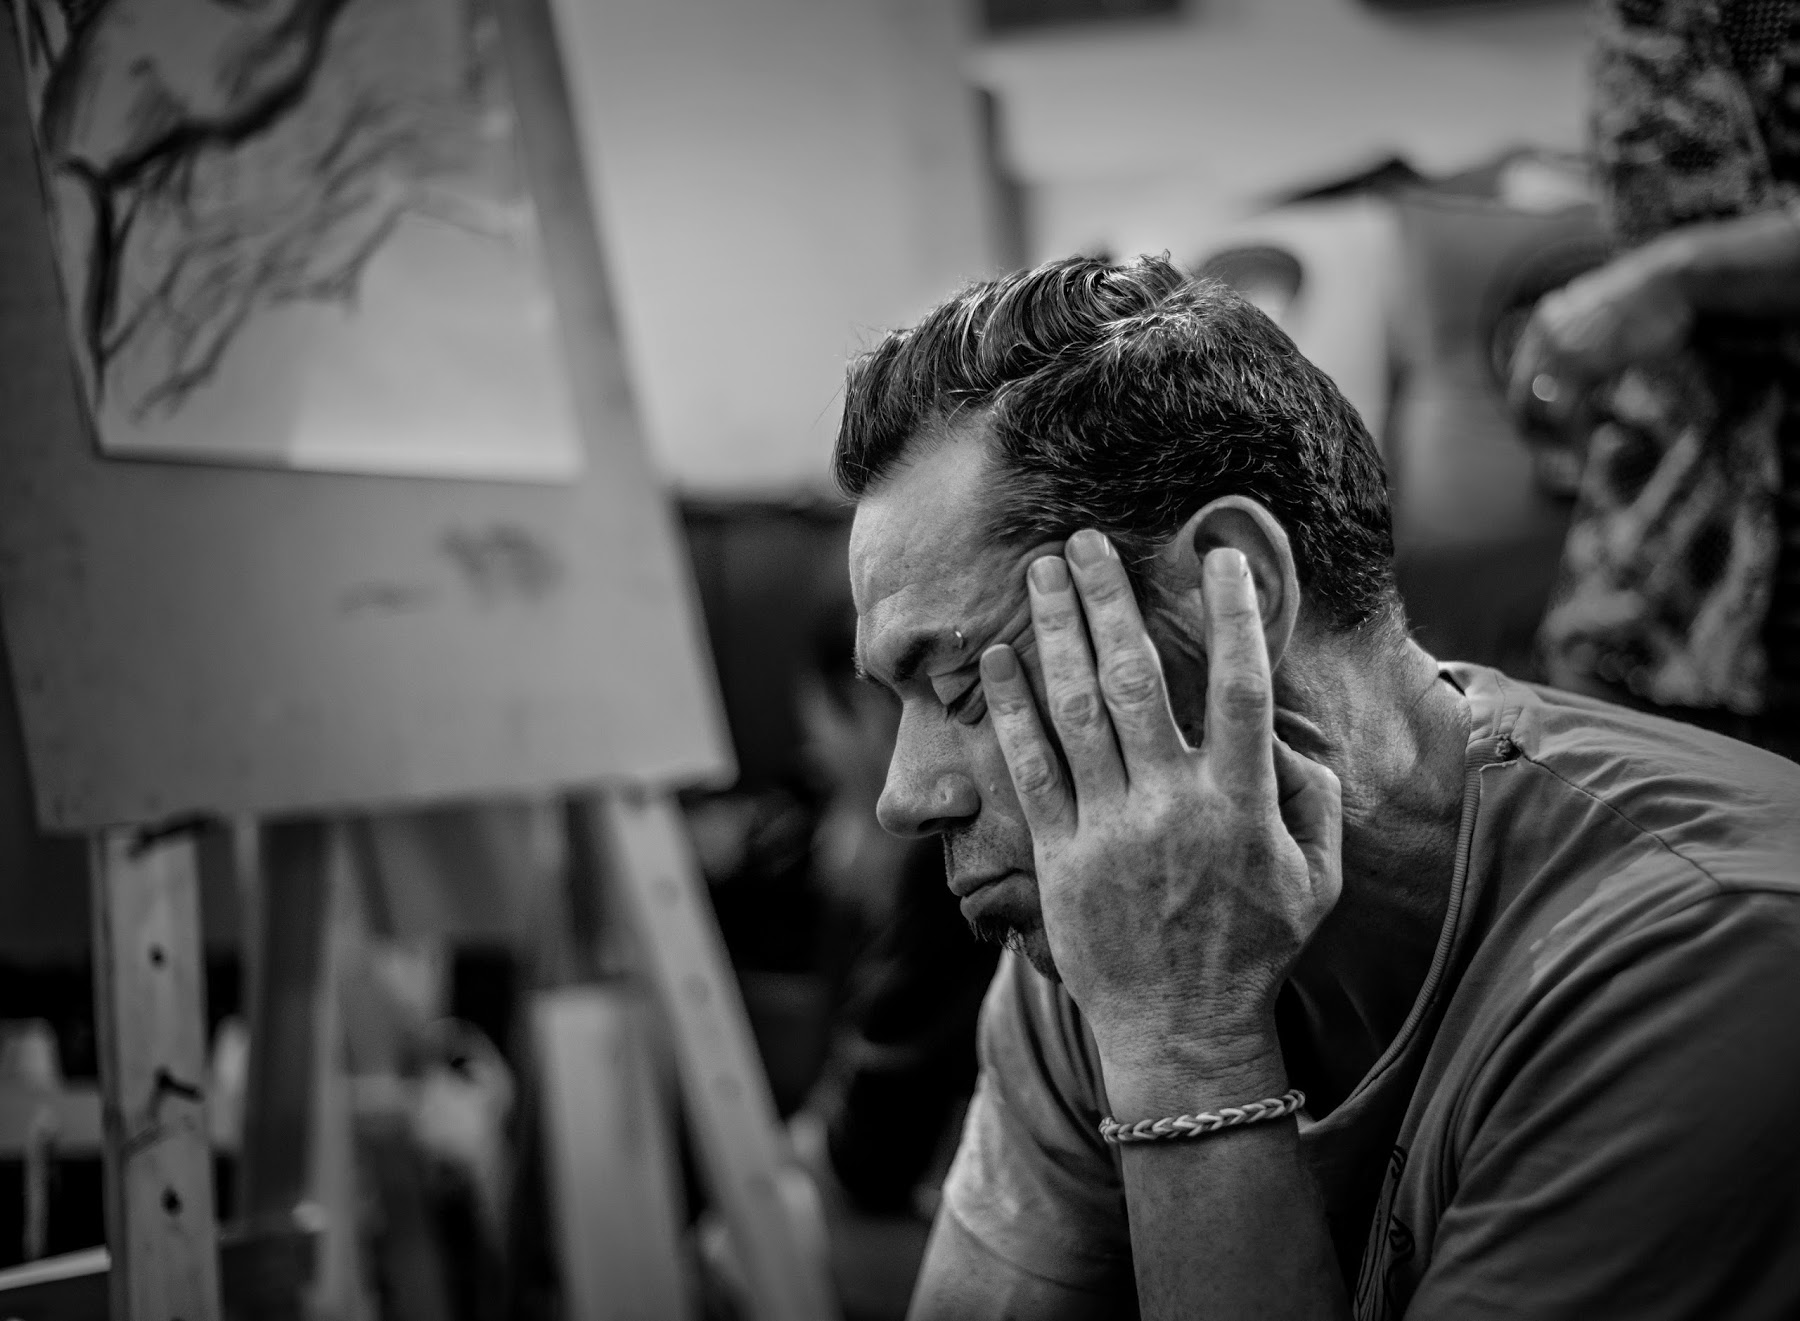 How This Artist Overcomes His Greatest Struggles By Choosing To Celebrate Life, Anthony Breslin, Strength and Resilience